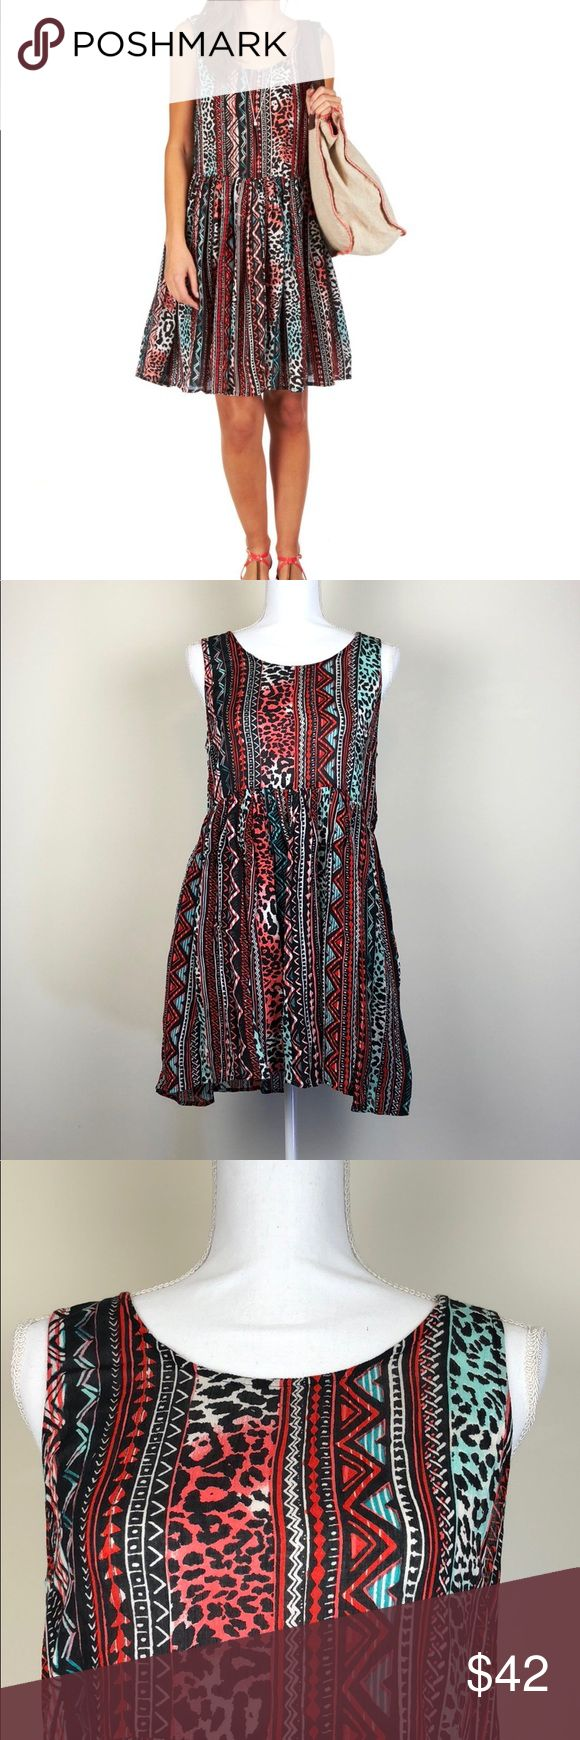 "Billabong Wild Chance Aquarius Dress Size Small New with Tags! Billabong Wild Chance Aquarius Dress. Size Small. Sleeveless smock style dress. Round neckline. Subtle pleating to skirt. Dipped back with fabric strip detail. Looser fit.   Approximate Measurements  Underarm to Underarm: 17.5"" Waist: 16.5"" Top to Bottom: 31.5""  I: 154 Billabong Dresses"